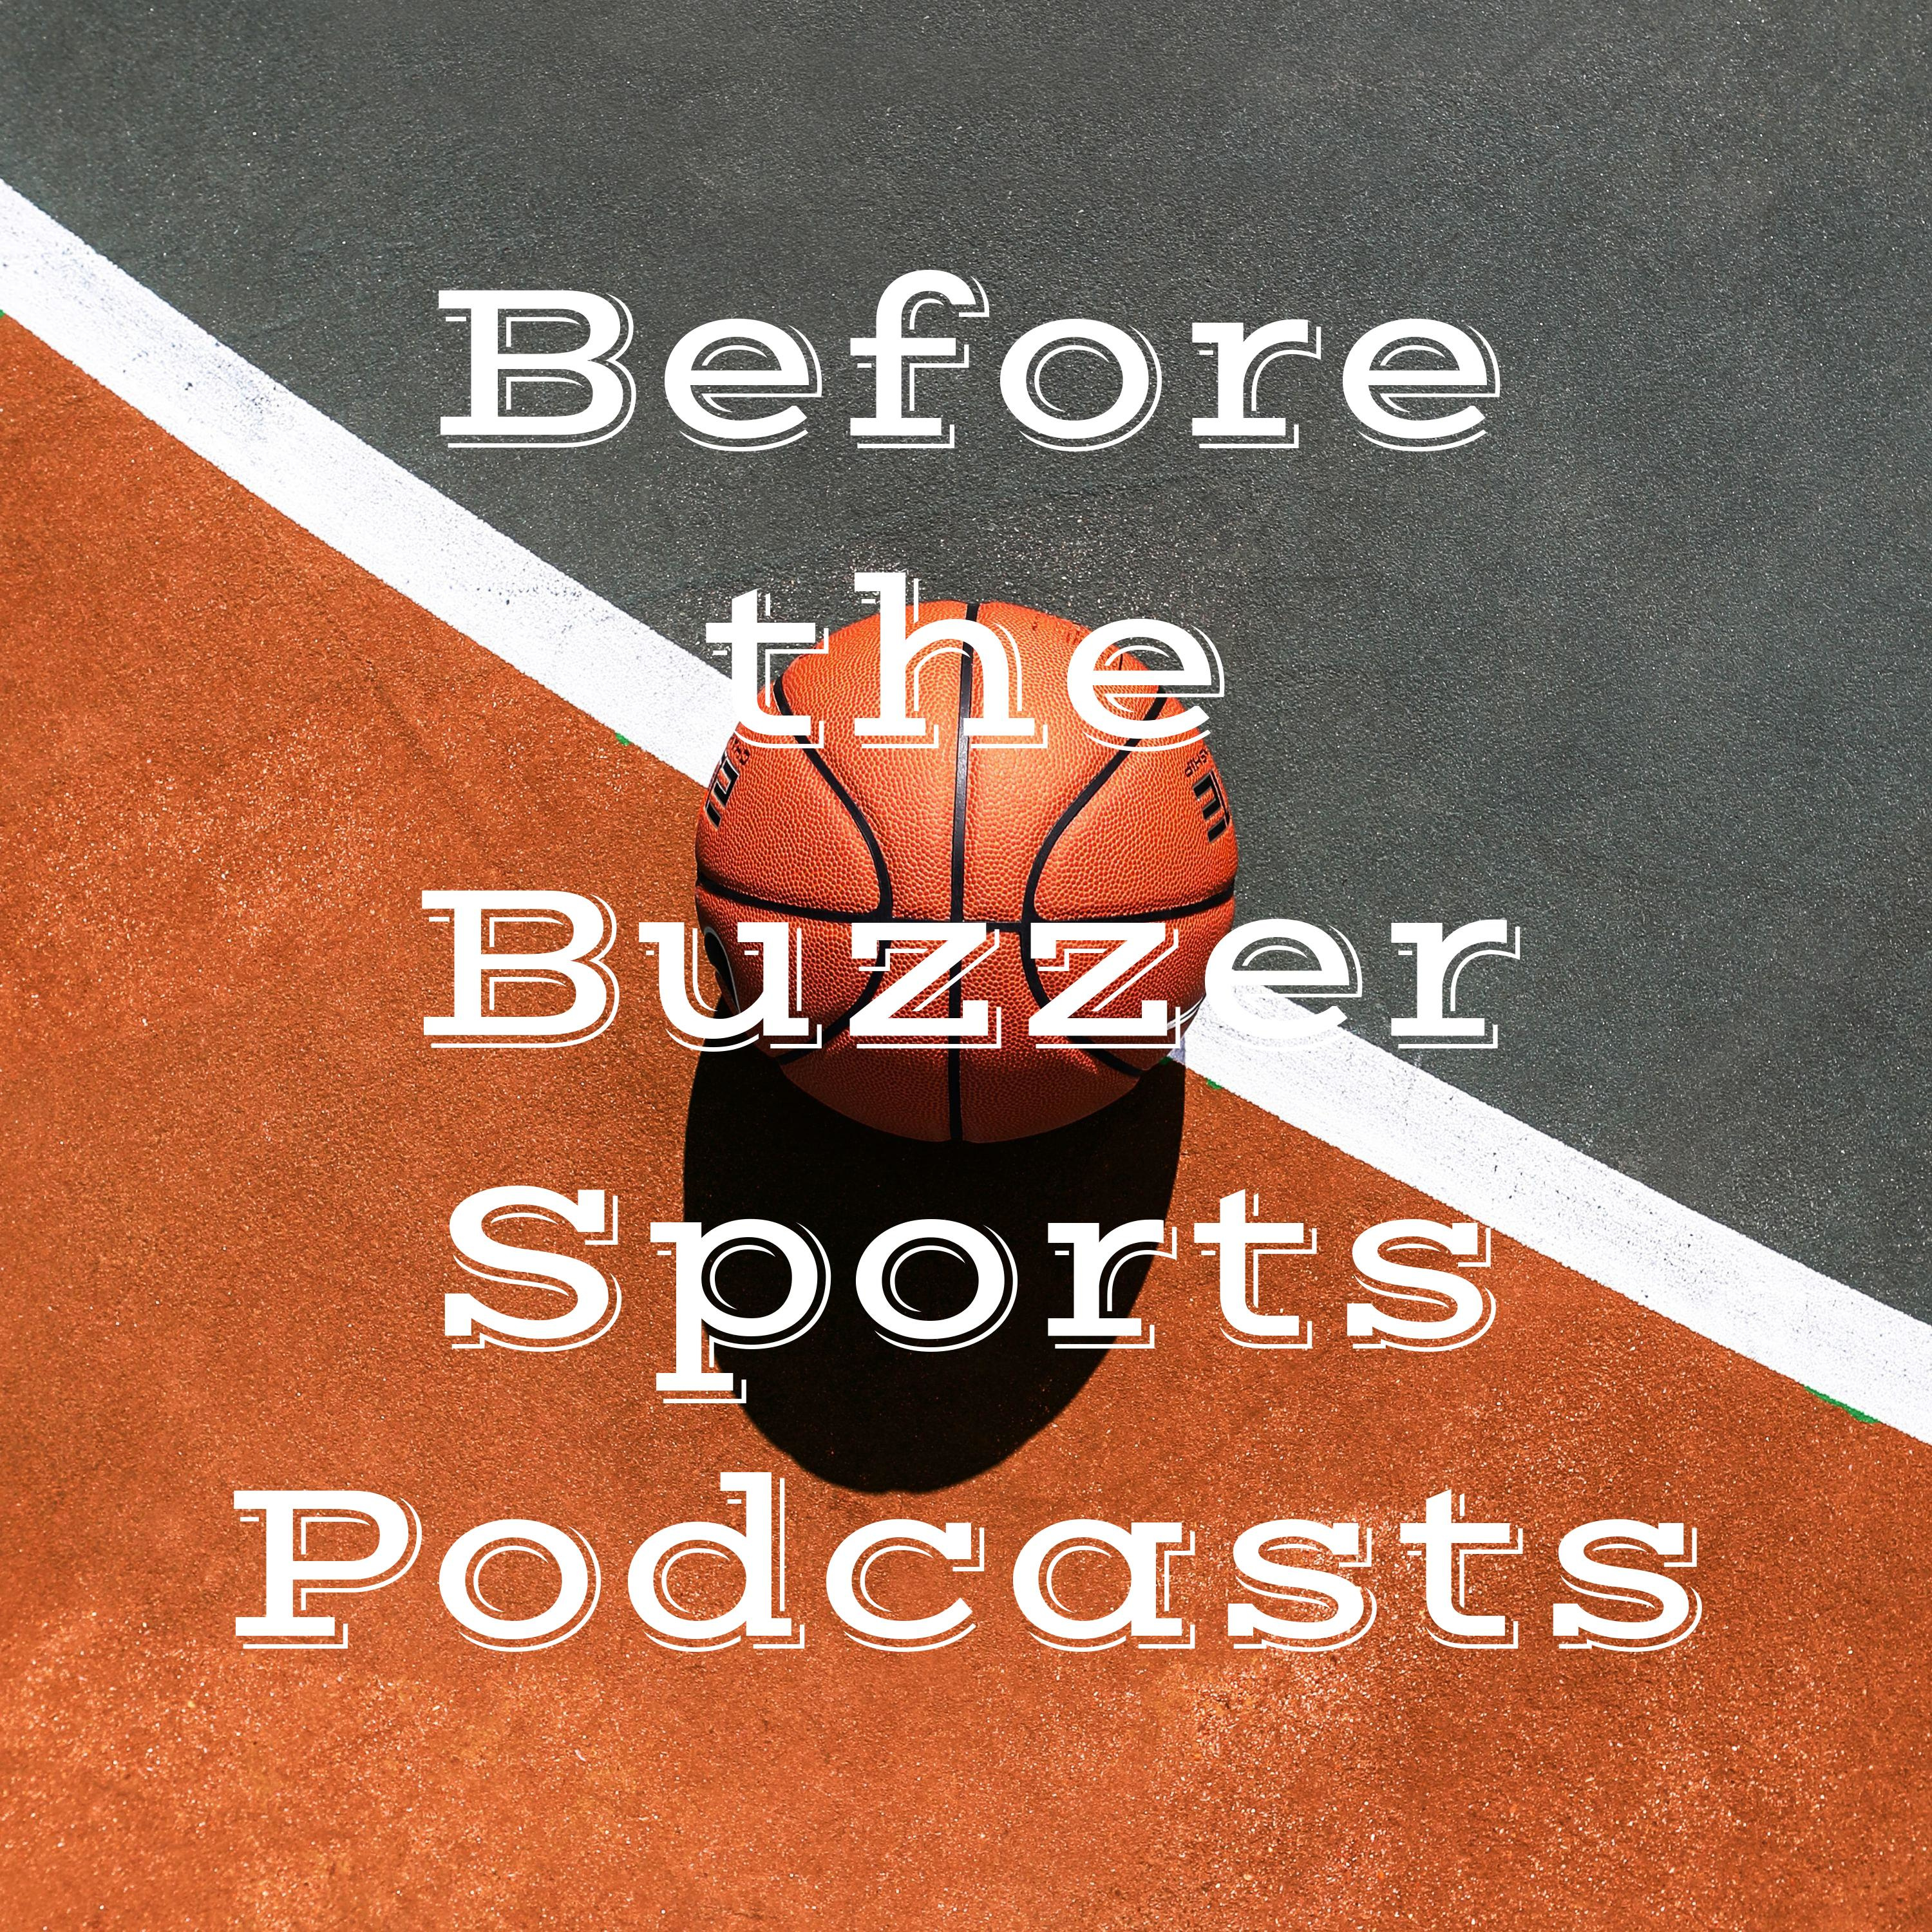 MLB Home Run Derby Preview, NBA Free Agency, and More!